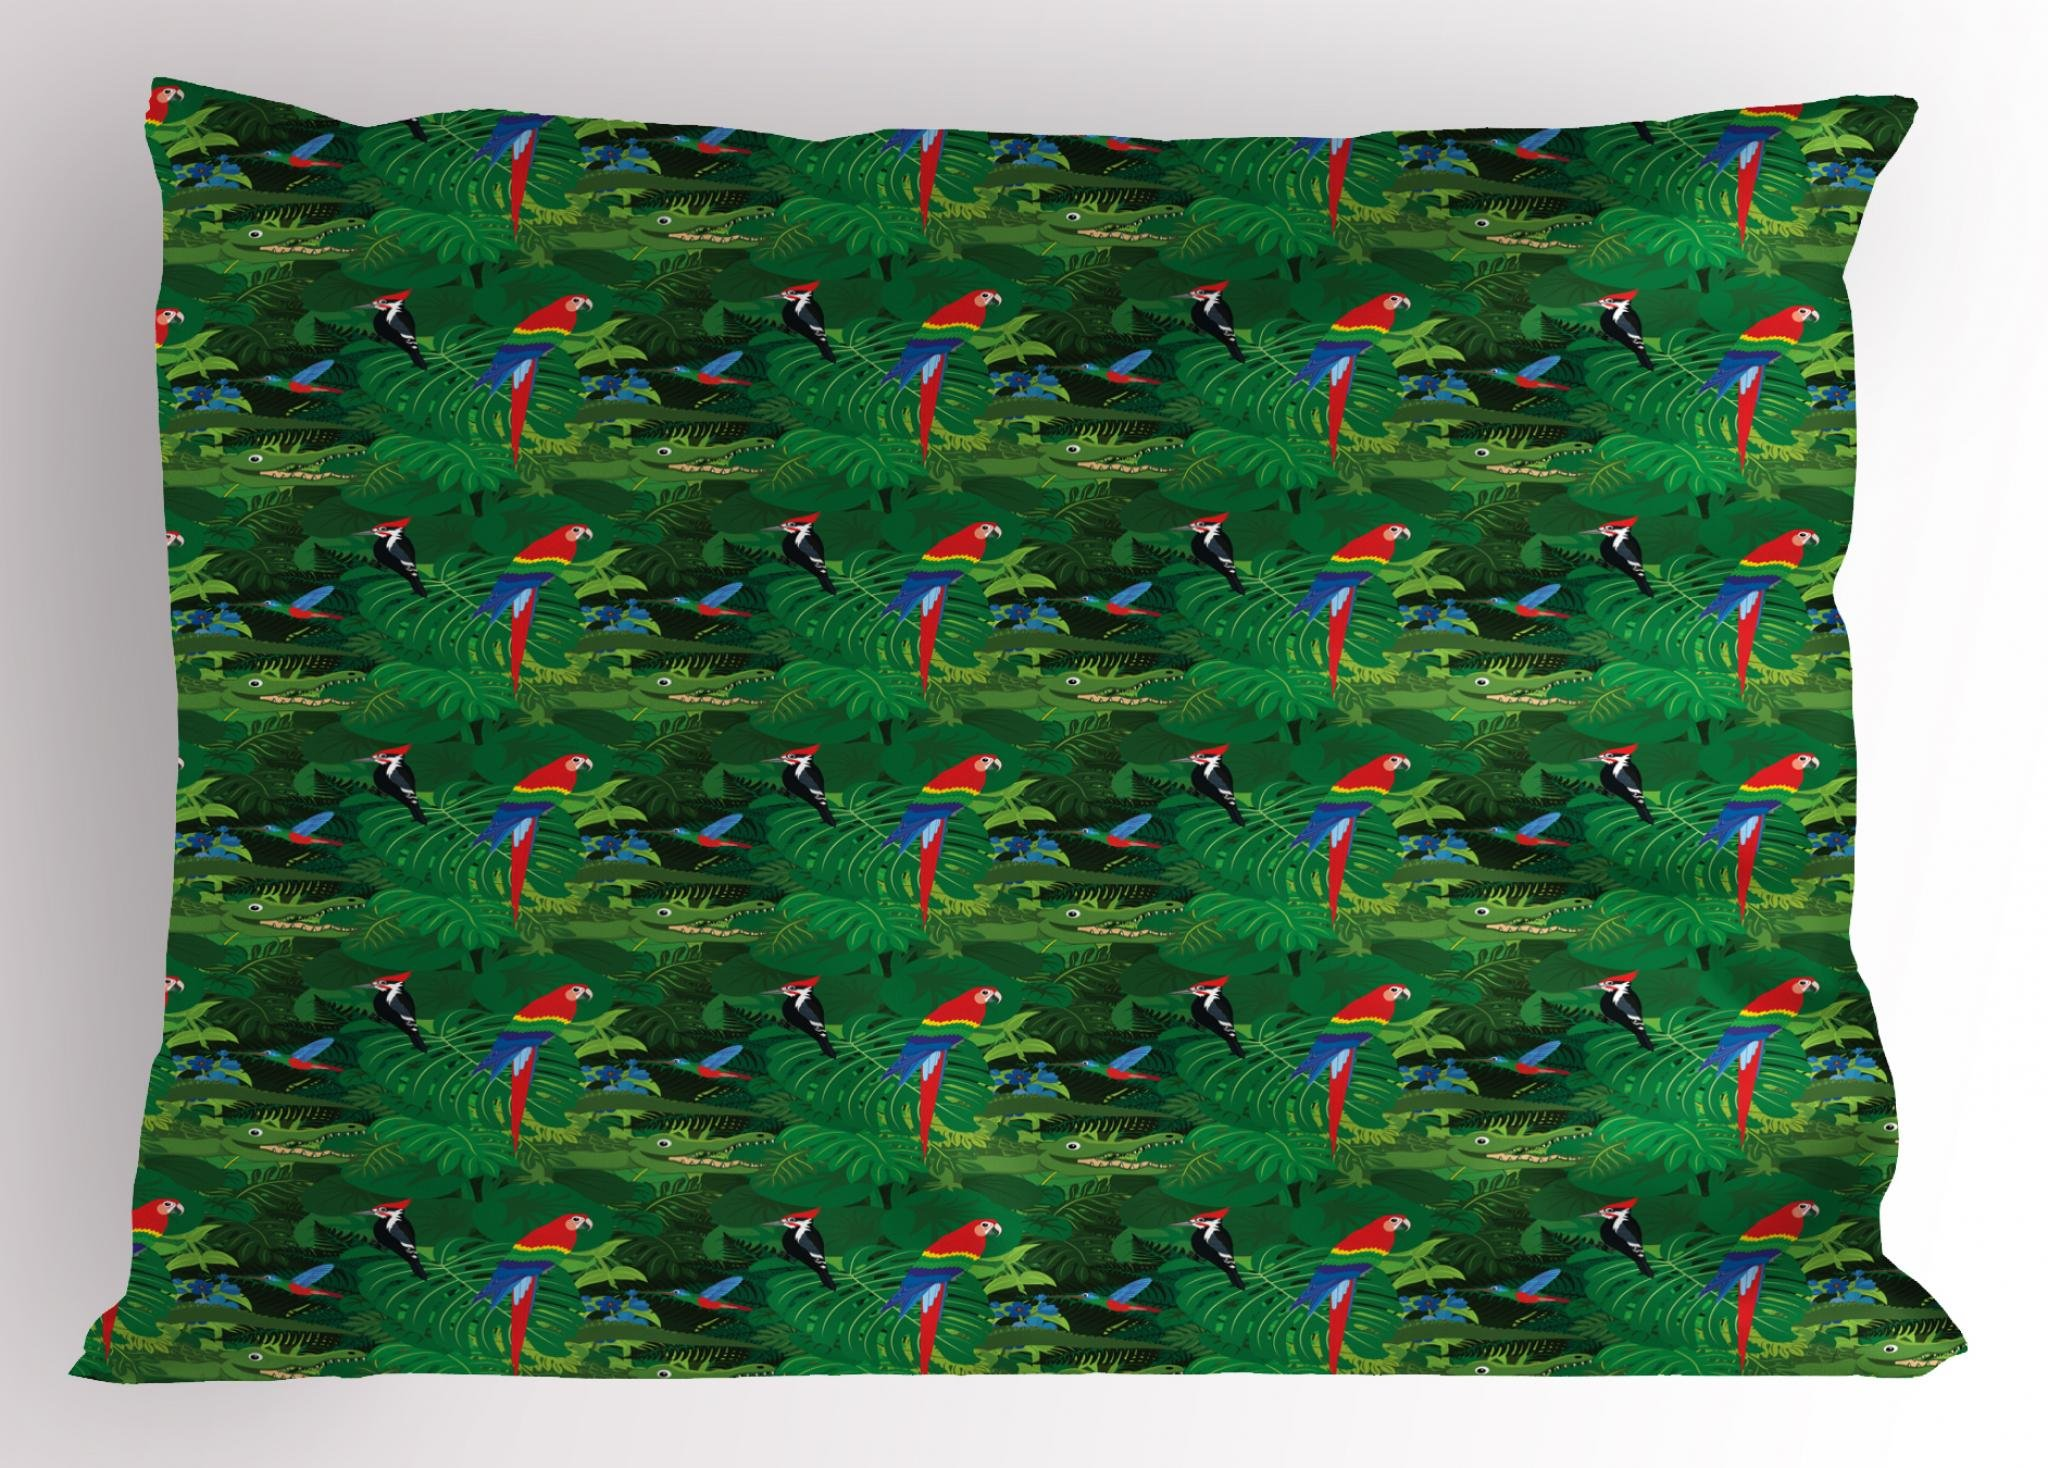 Lunarable Alligator Pillow Sham, Realistic Illustration of Tropical Fauna with Parrot Woodpecker and Palm Leaves, Decorative Standard Size Printed Pillowcase, 26 X 20 inches, Multicolor